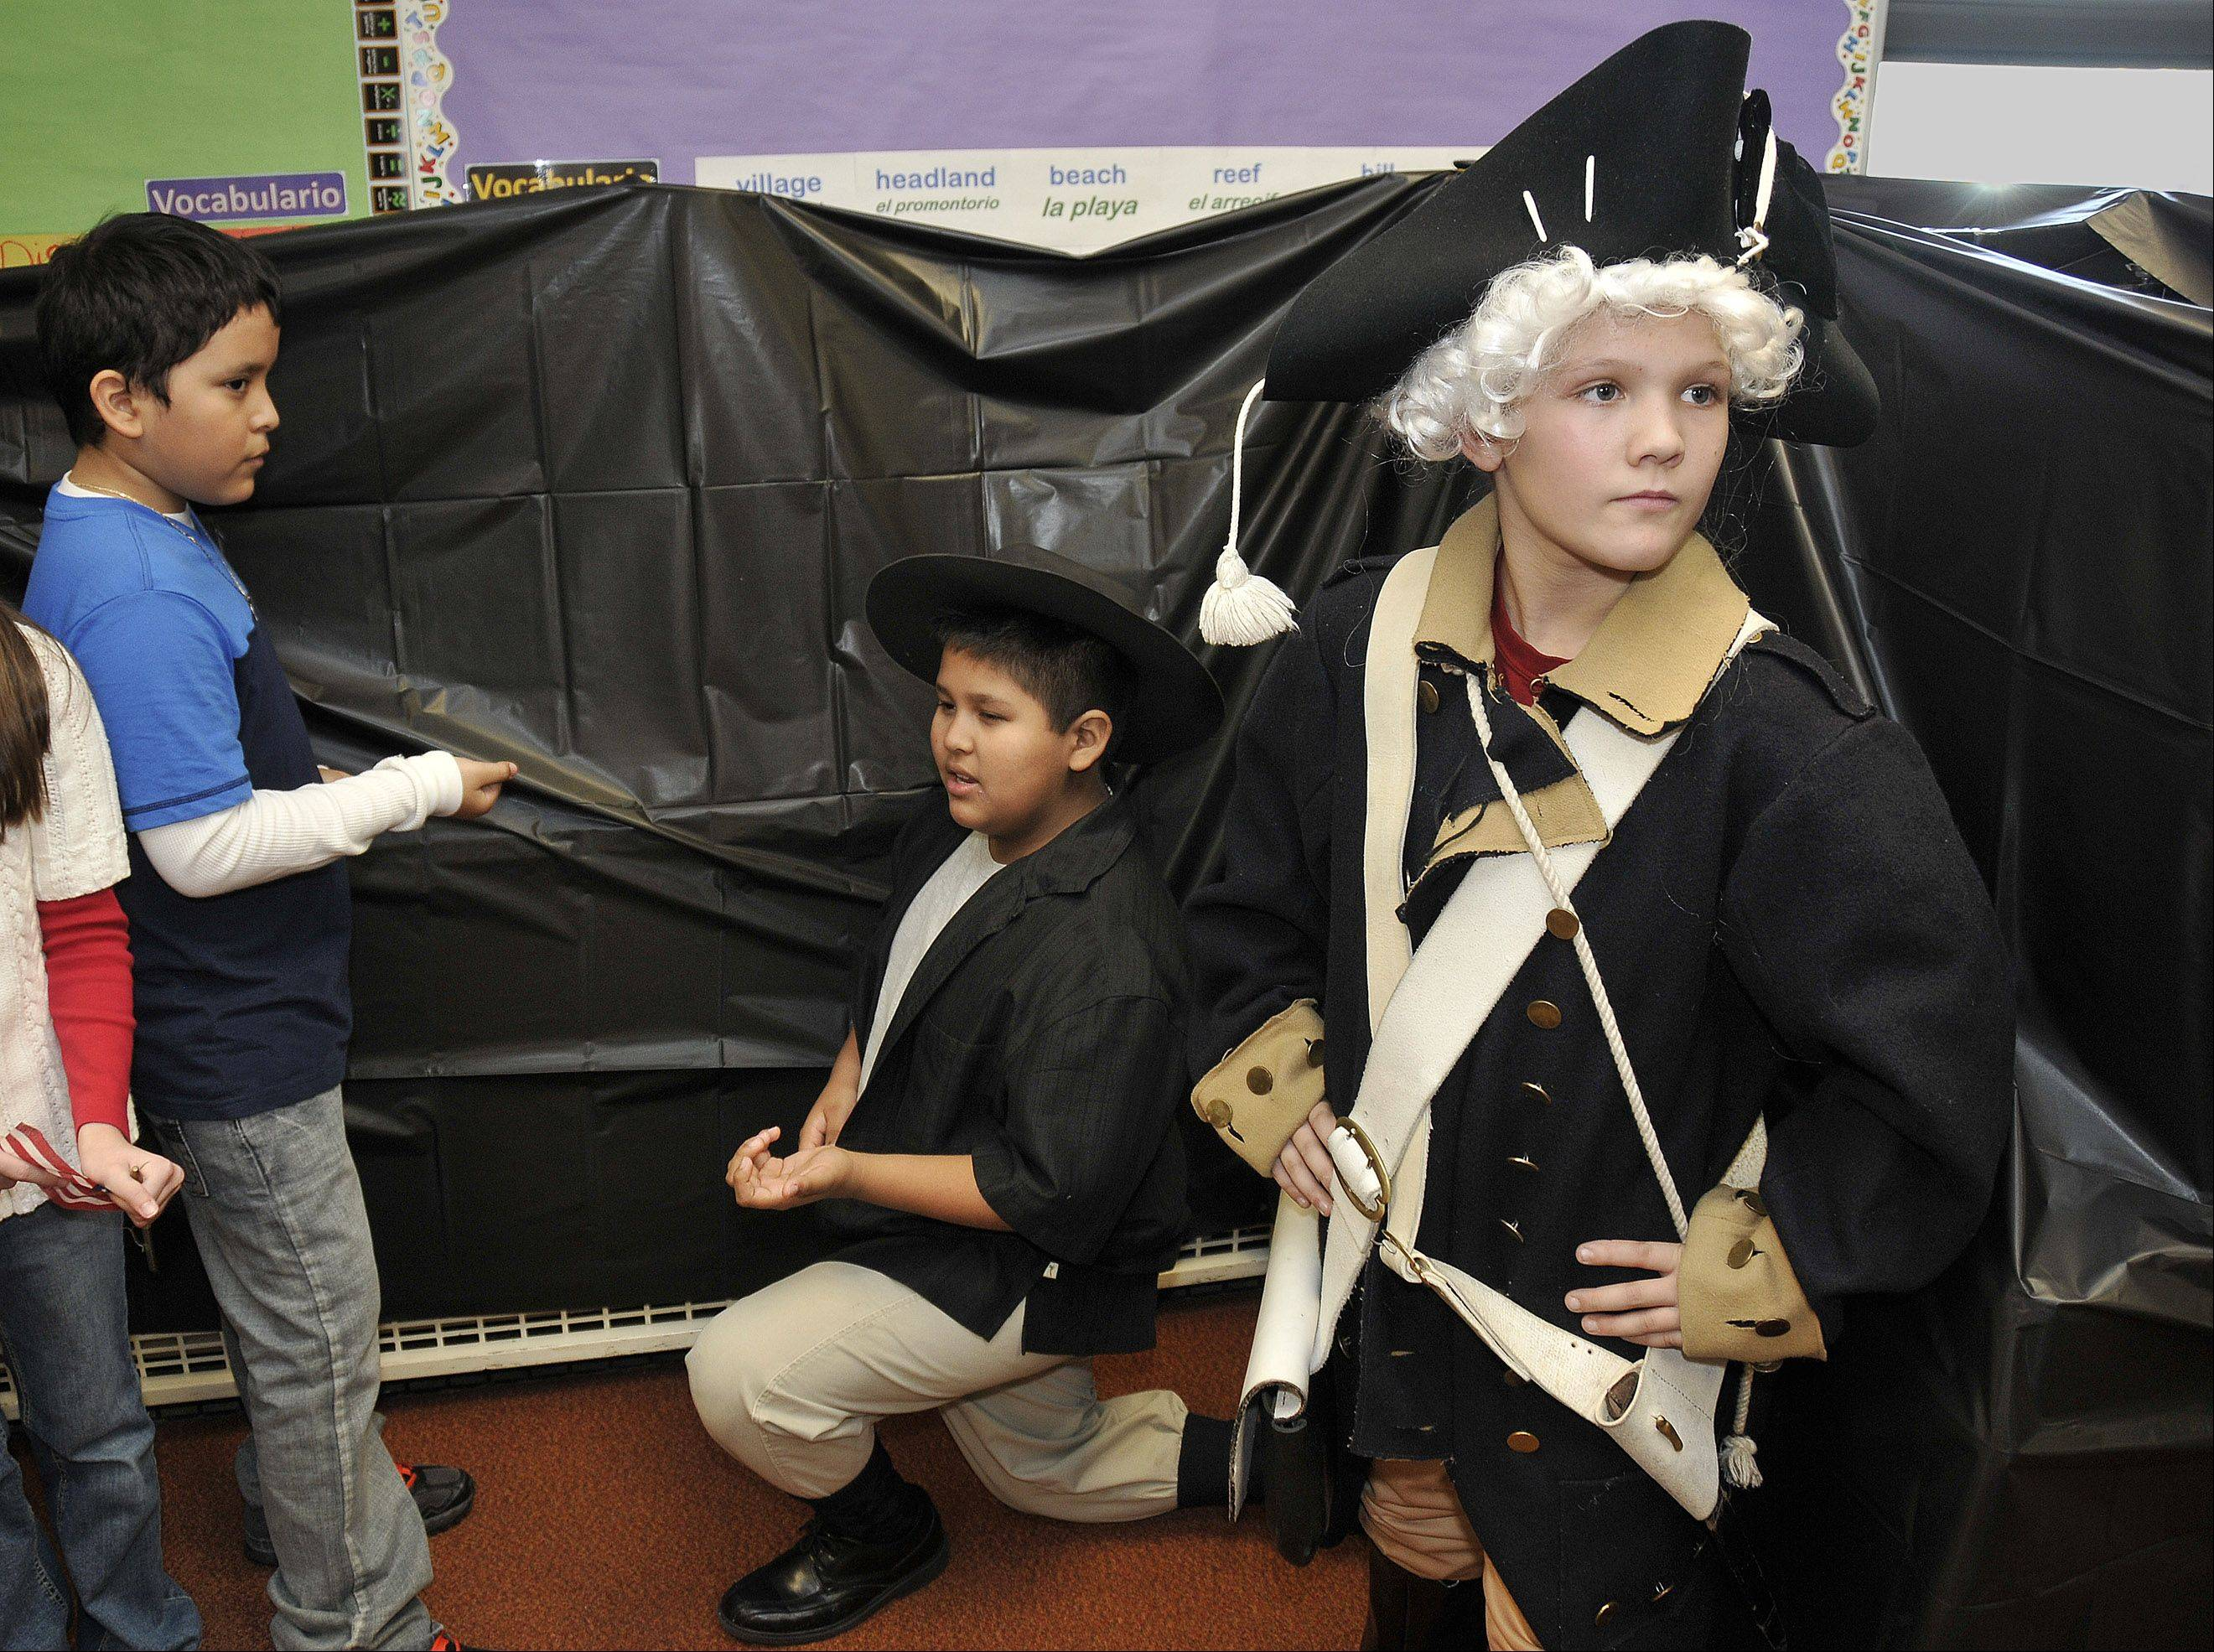 Enrique Villagran, left, posing as a British soldier, holds an imaginary gun on Continental Army soldier Eric Coss. Austin Shwatal, right, as General Washington, stoically looks away.